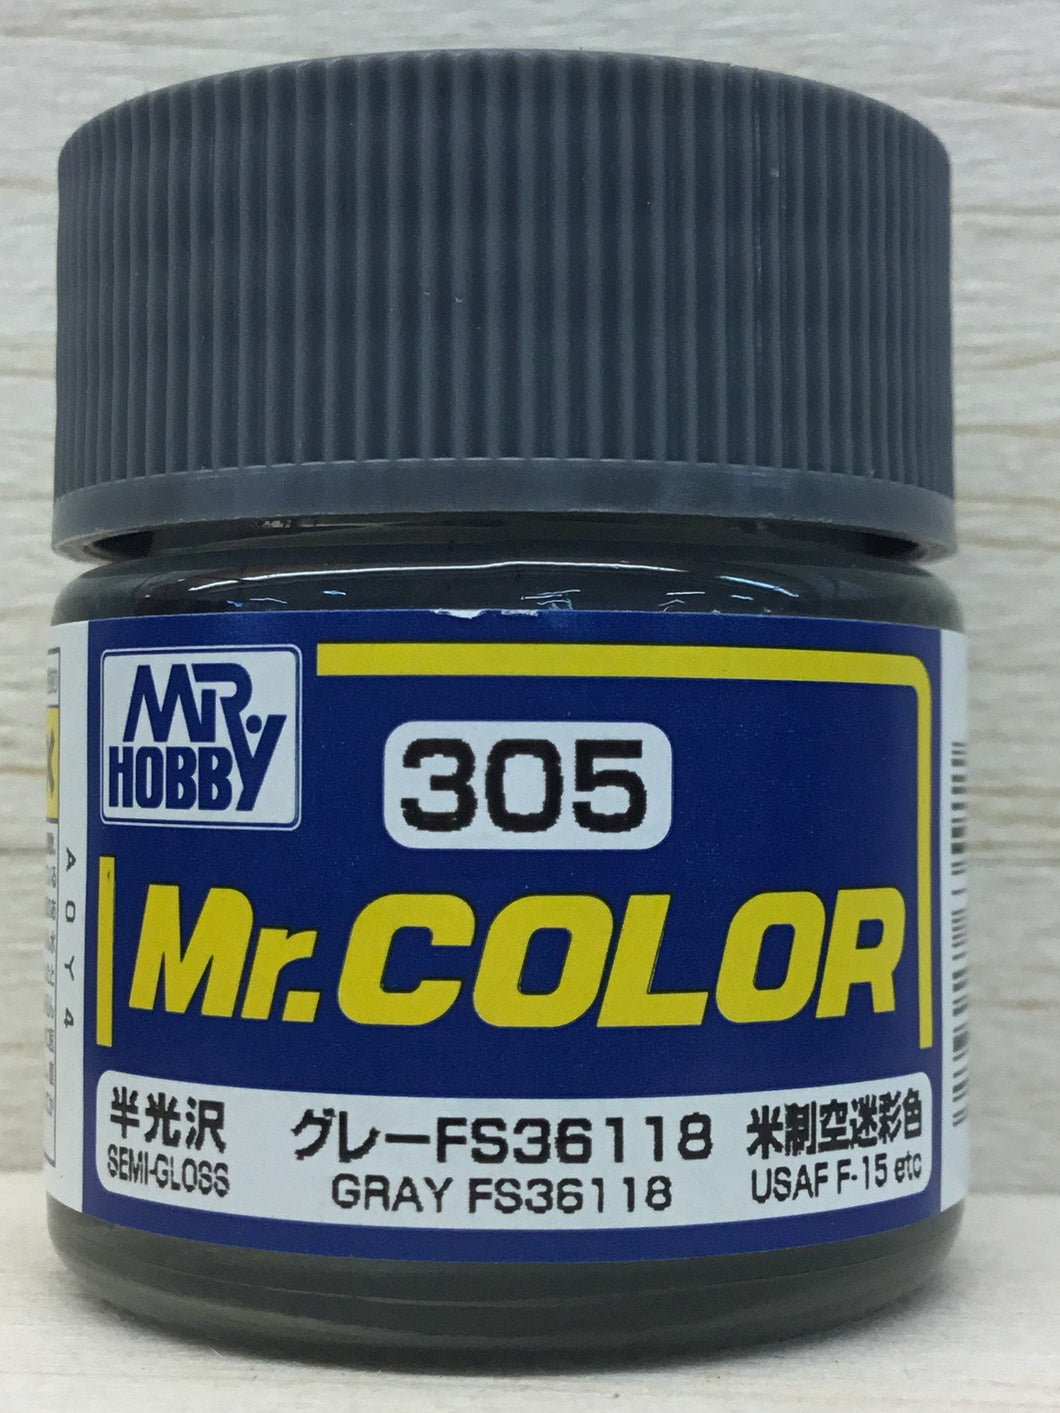 GUNZE MR COLOR C305 SEMI GLOSS GRAY FS36118